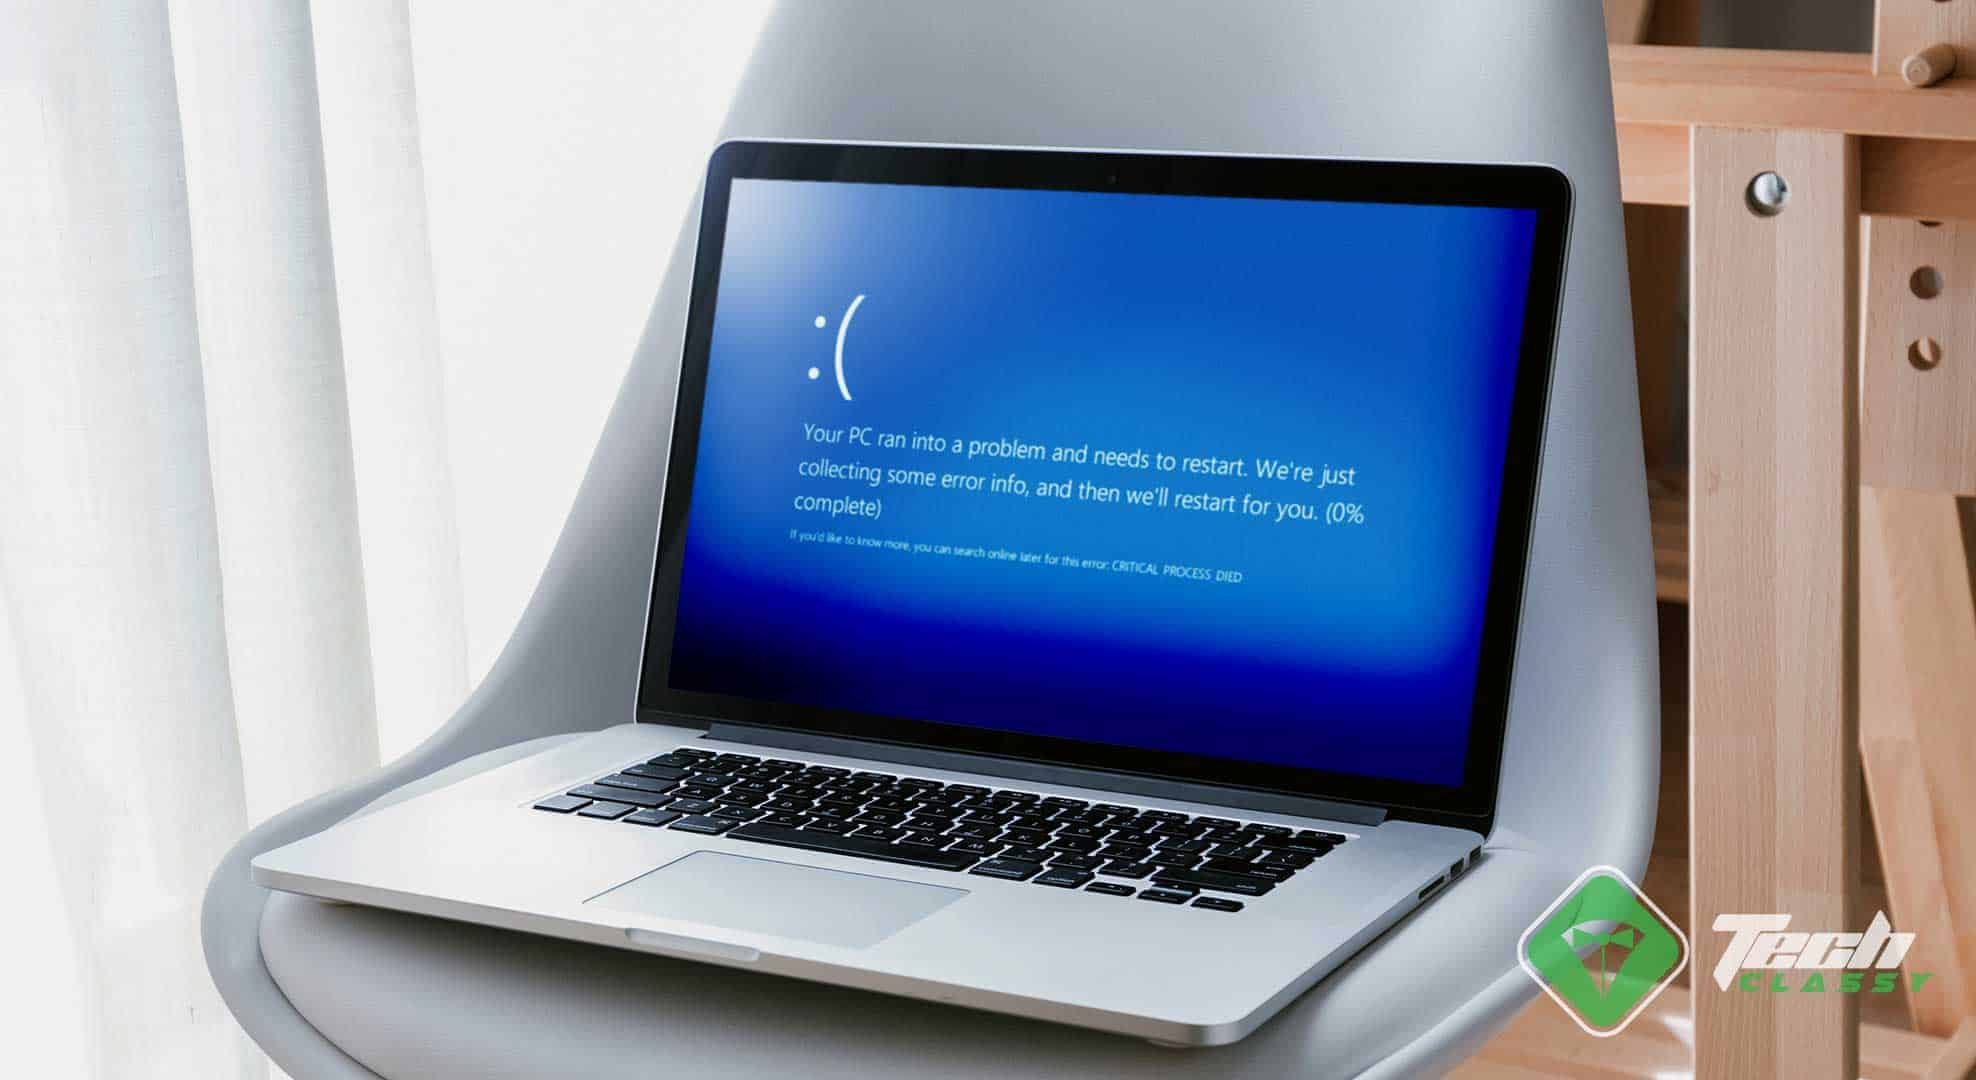 How to Fix CRITICAL PROCESS DIED Blue Screen on Windows